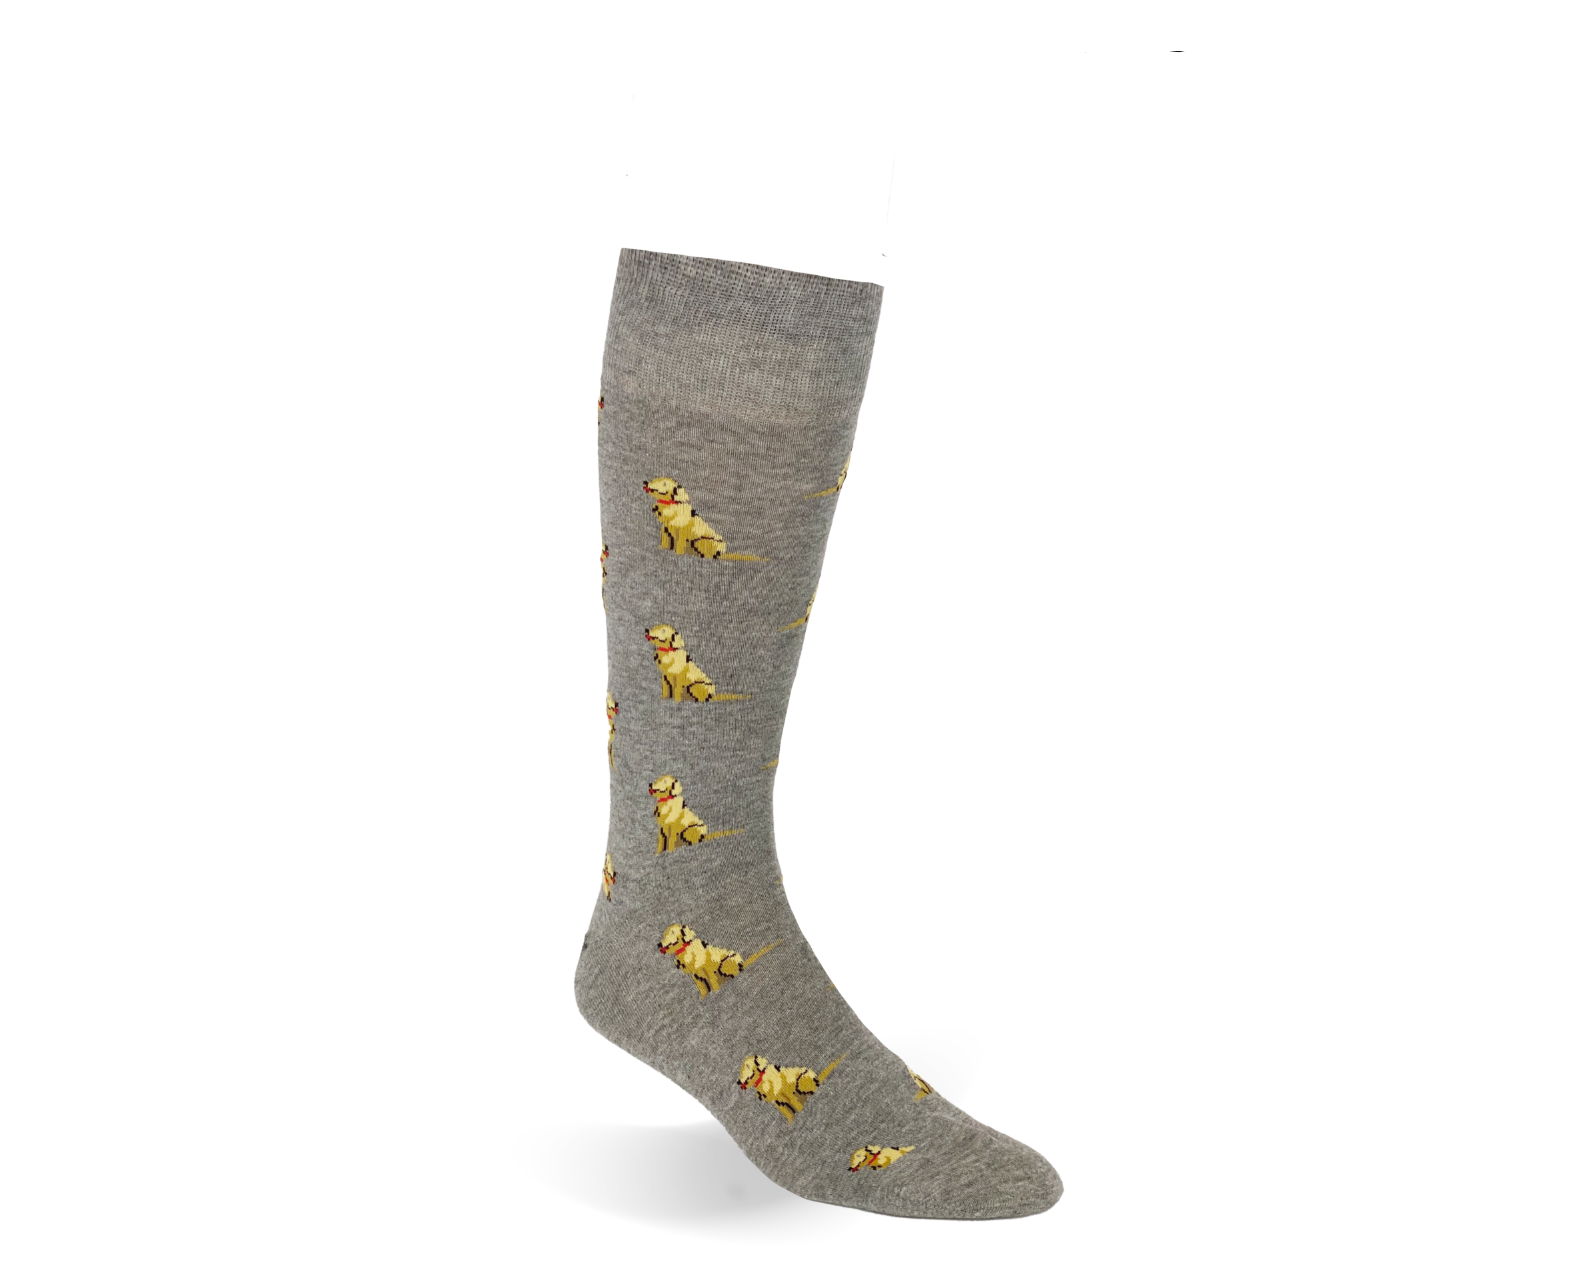 Golden Retriever Sock